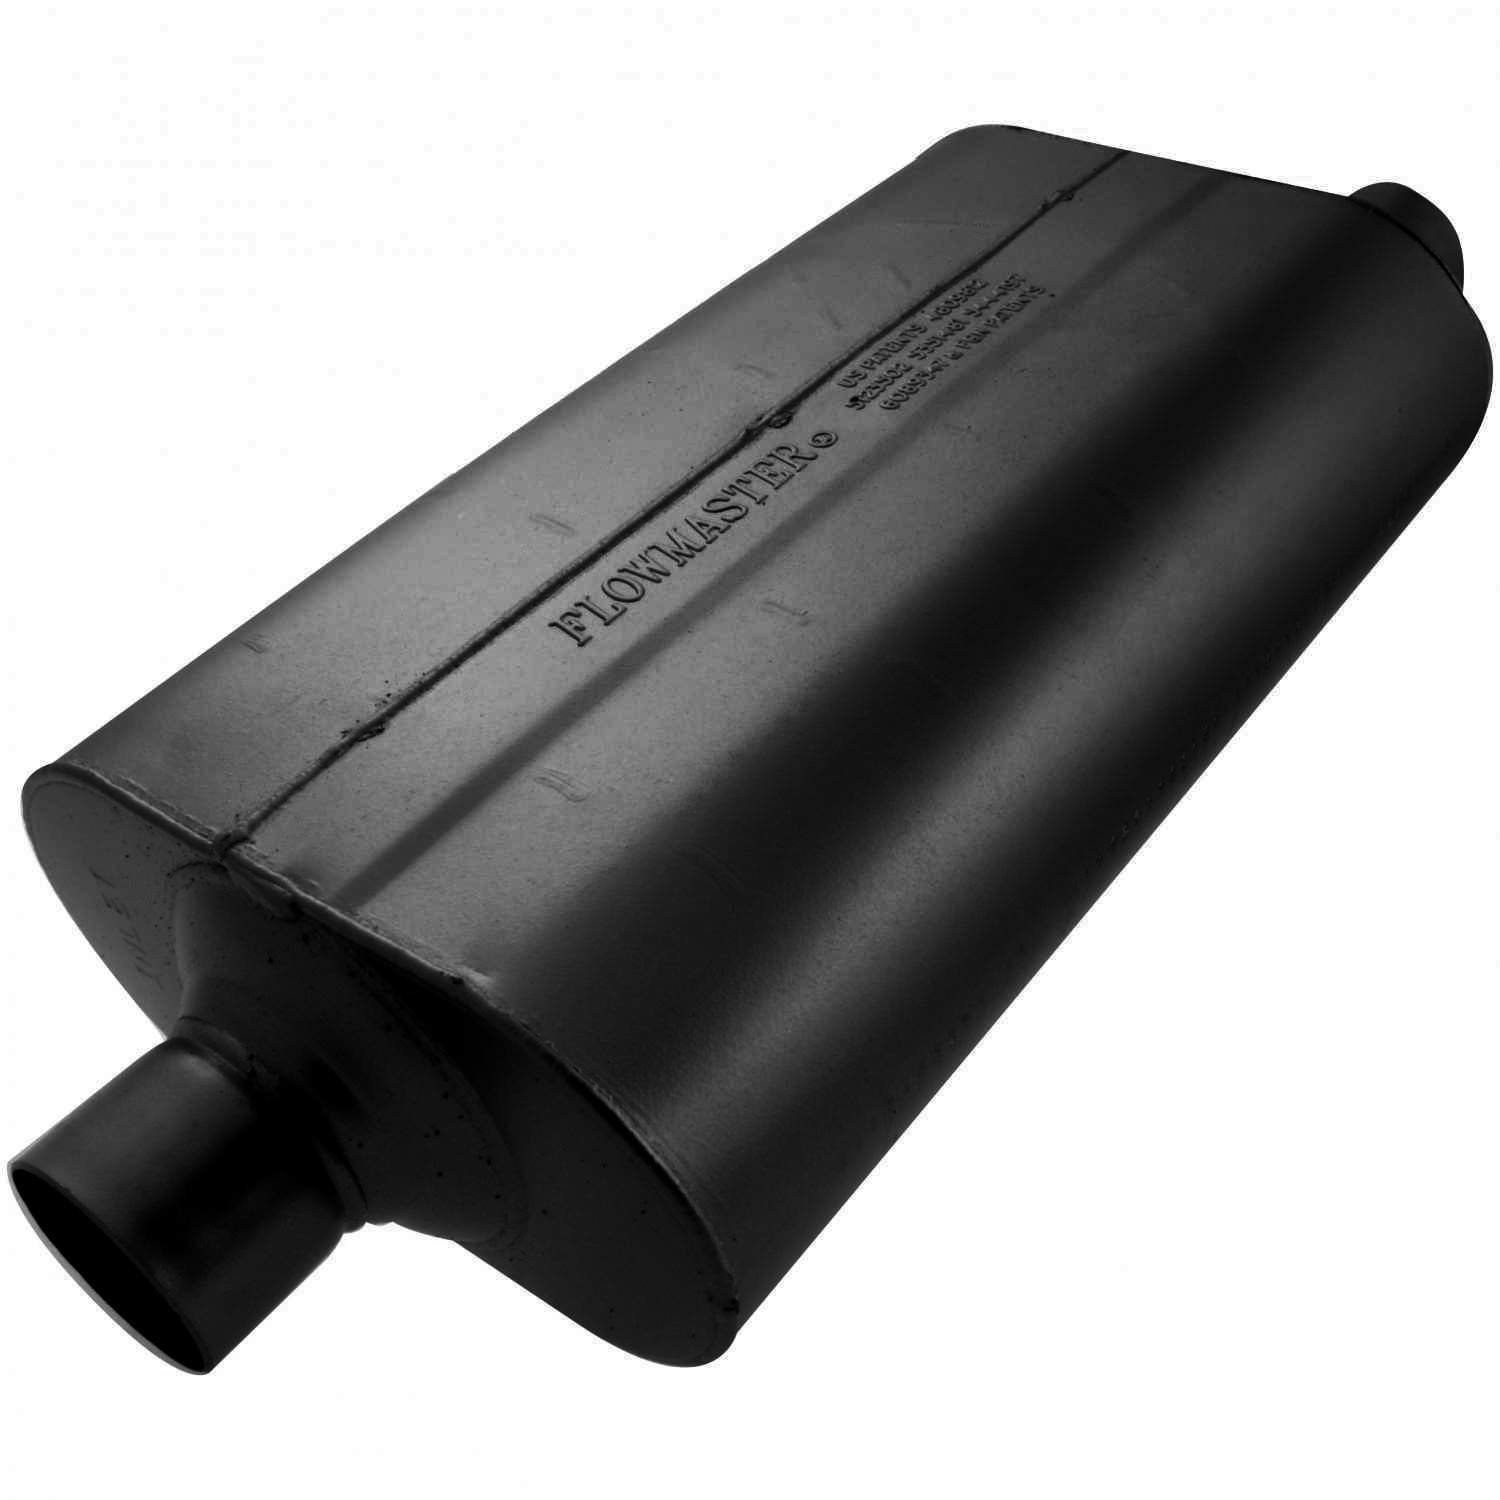 Flowmaster 52557 Super 50 Muffler - 2.50 Center IN / 2.50 Offset OUT - Moderate Sound by Flowmaster (Image #1)